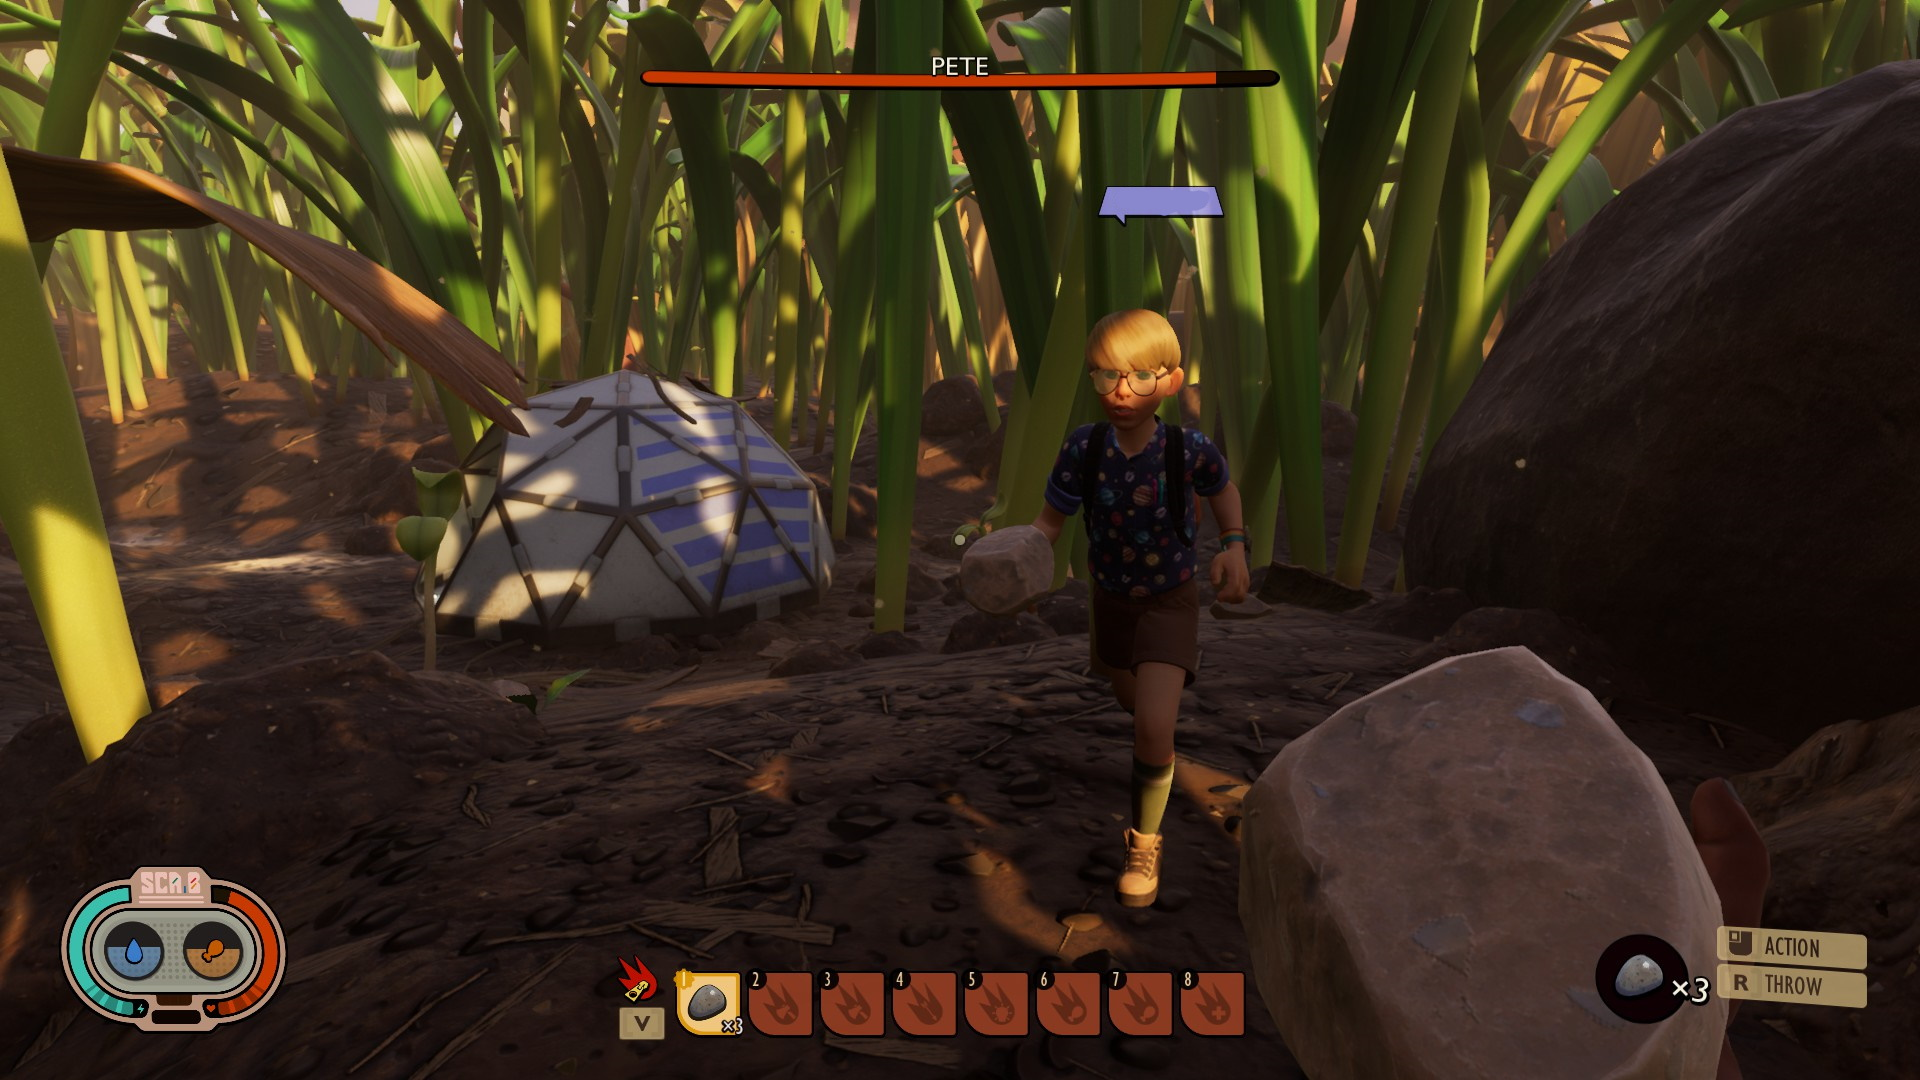 Another player stands in mid-stride, surrounded by tall grass and a small artificial dome. I am holding a rock.